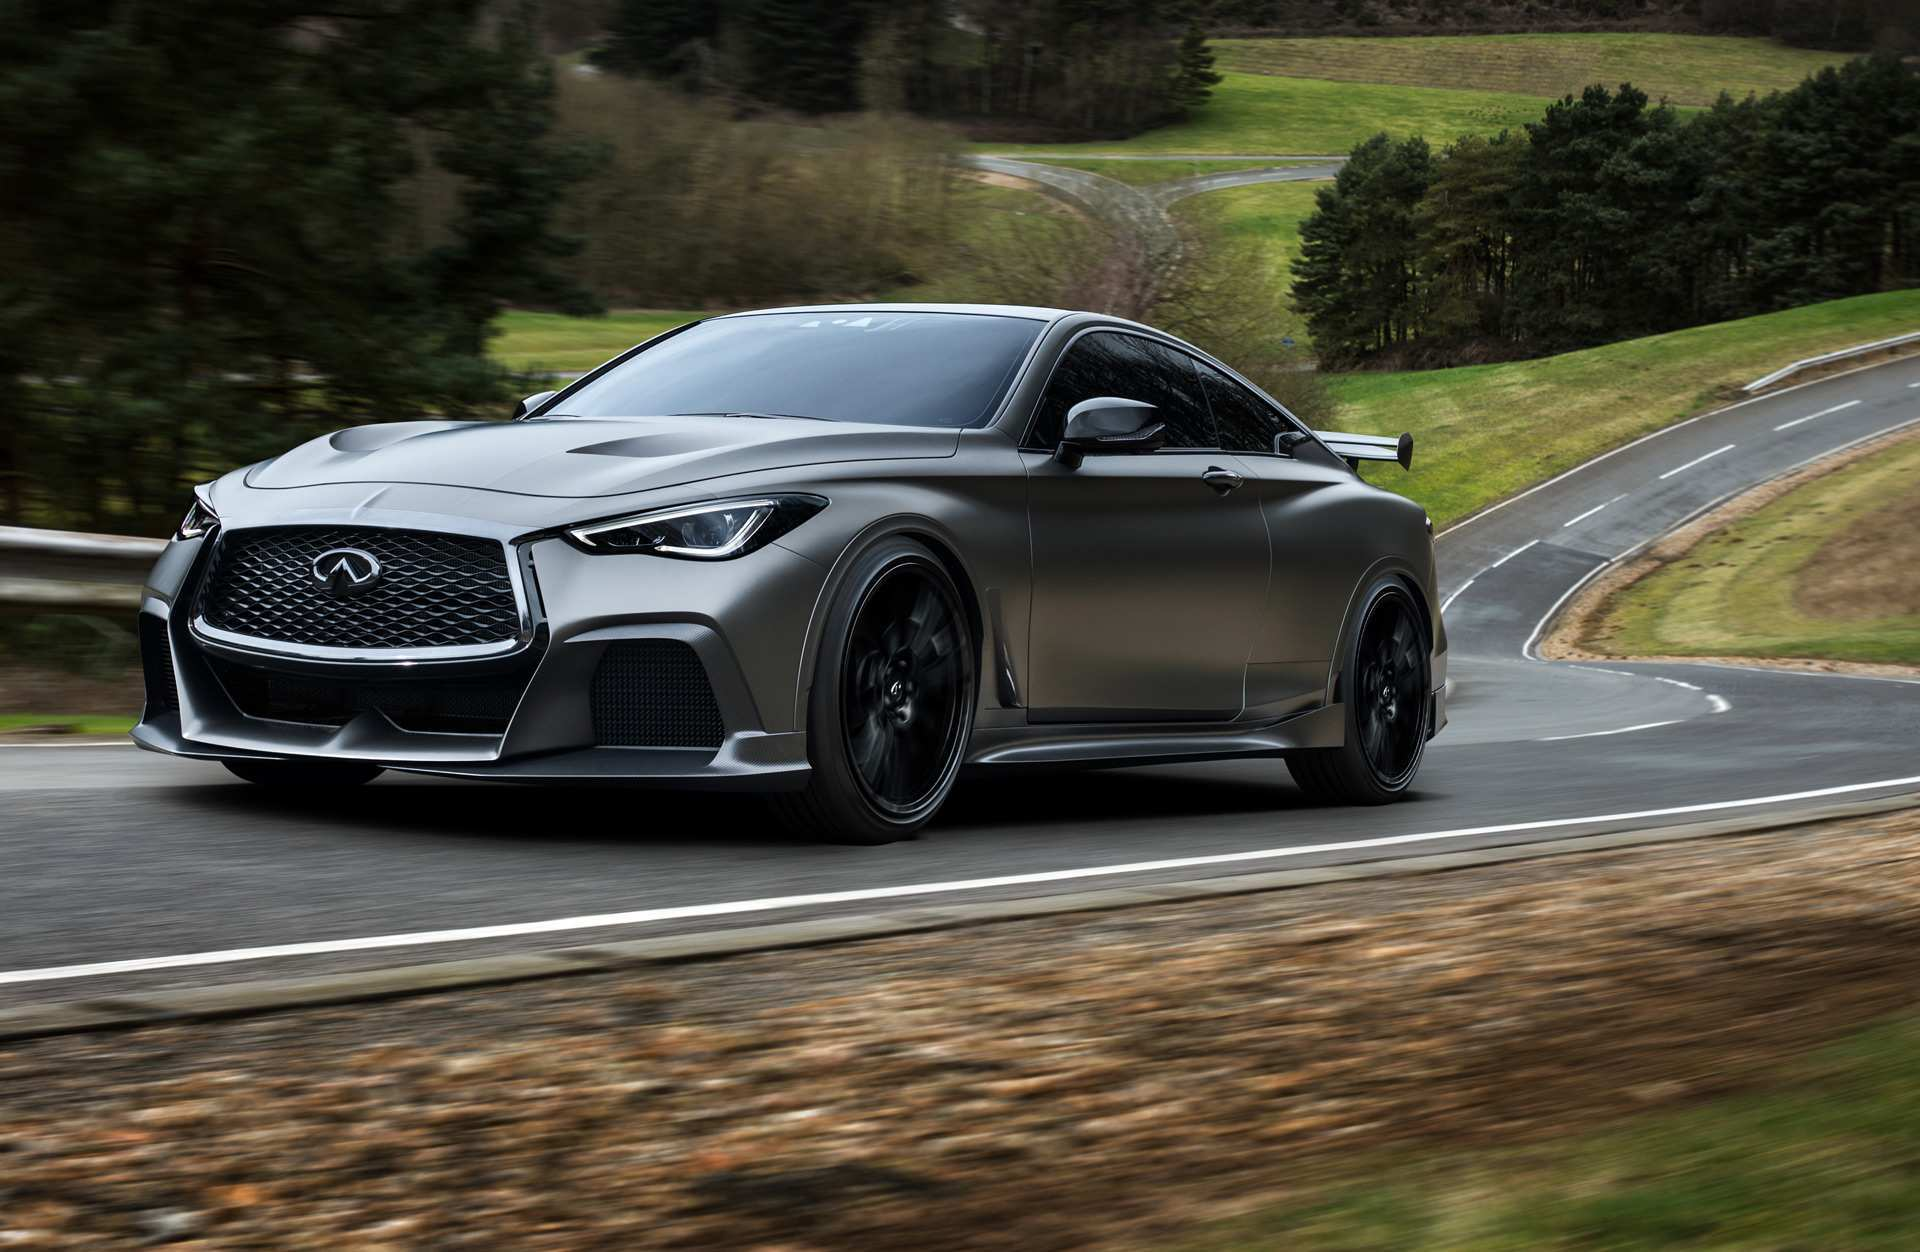 45 All New New Infiniti Coupe 2020 Spy Shoot